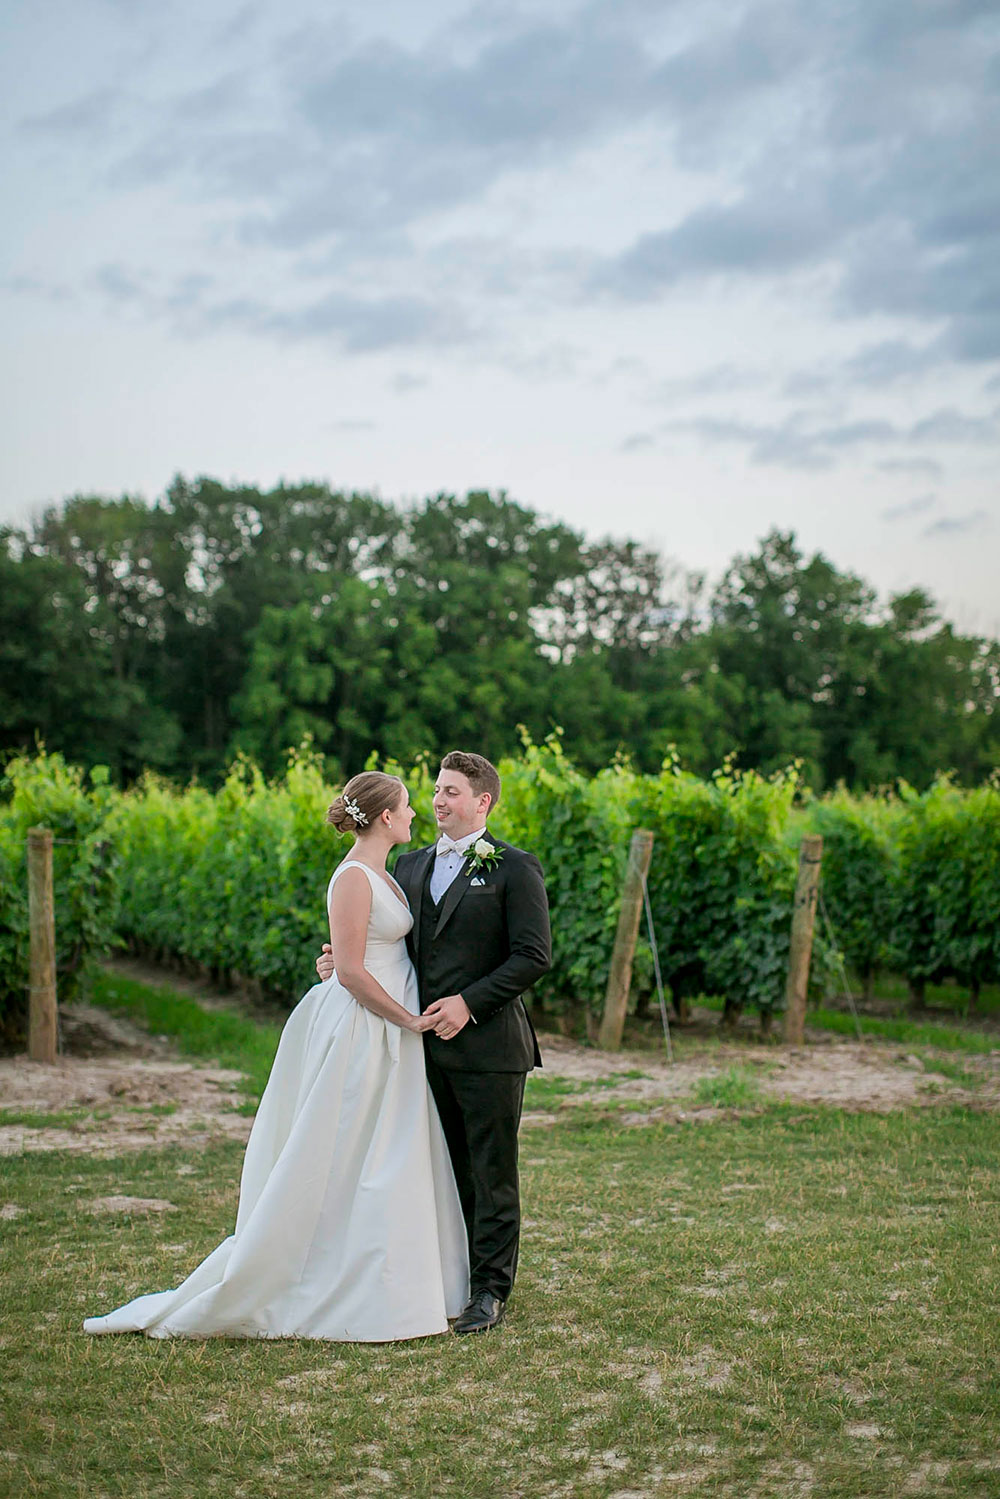 Chateau-des-Charmes-Winery-Destination-Wedding-and-Event-Photographer-Niagara-on-the-Lake-Philosophy-Studios-Photo-by-Eva-Derrick-Filer-007.jpg